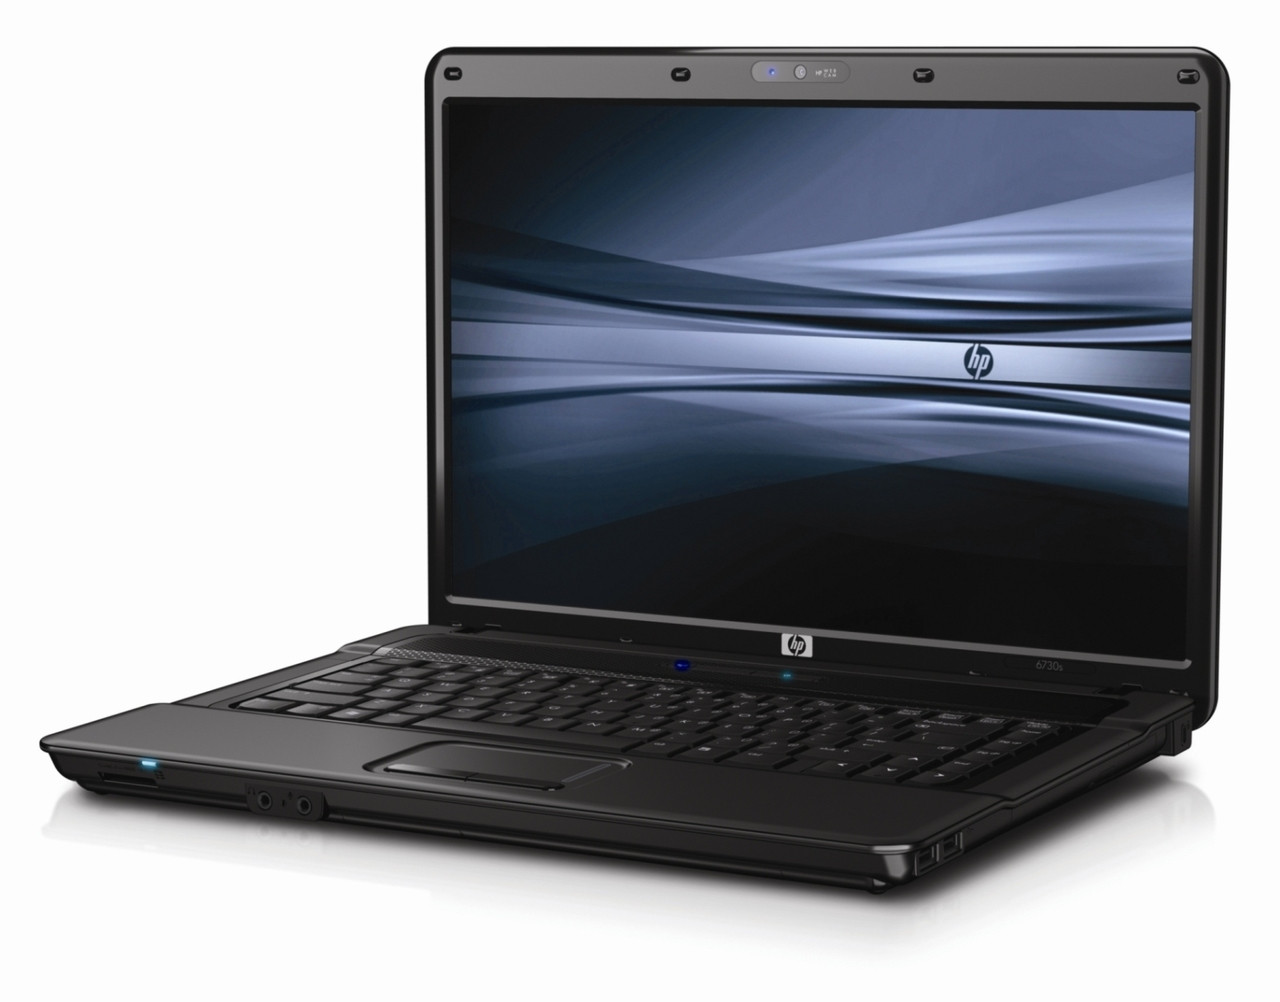 HP Compaq 615 - AMD Dual Core (Configure to Order) - FRONT SIDE